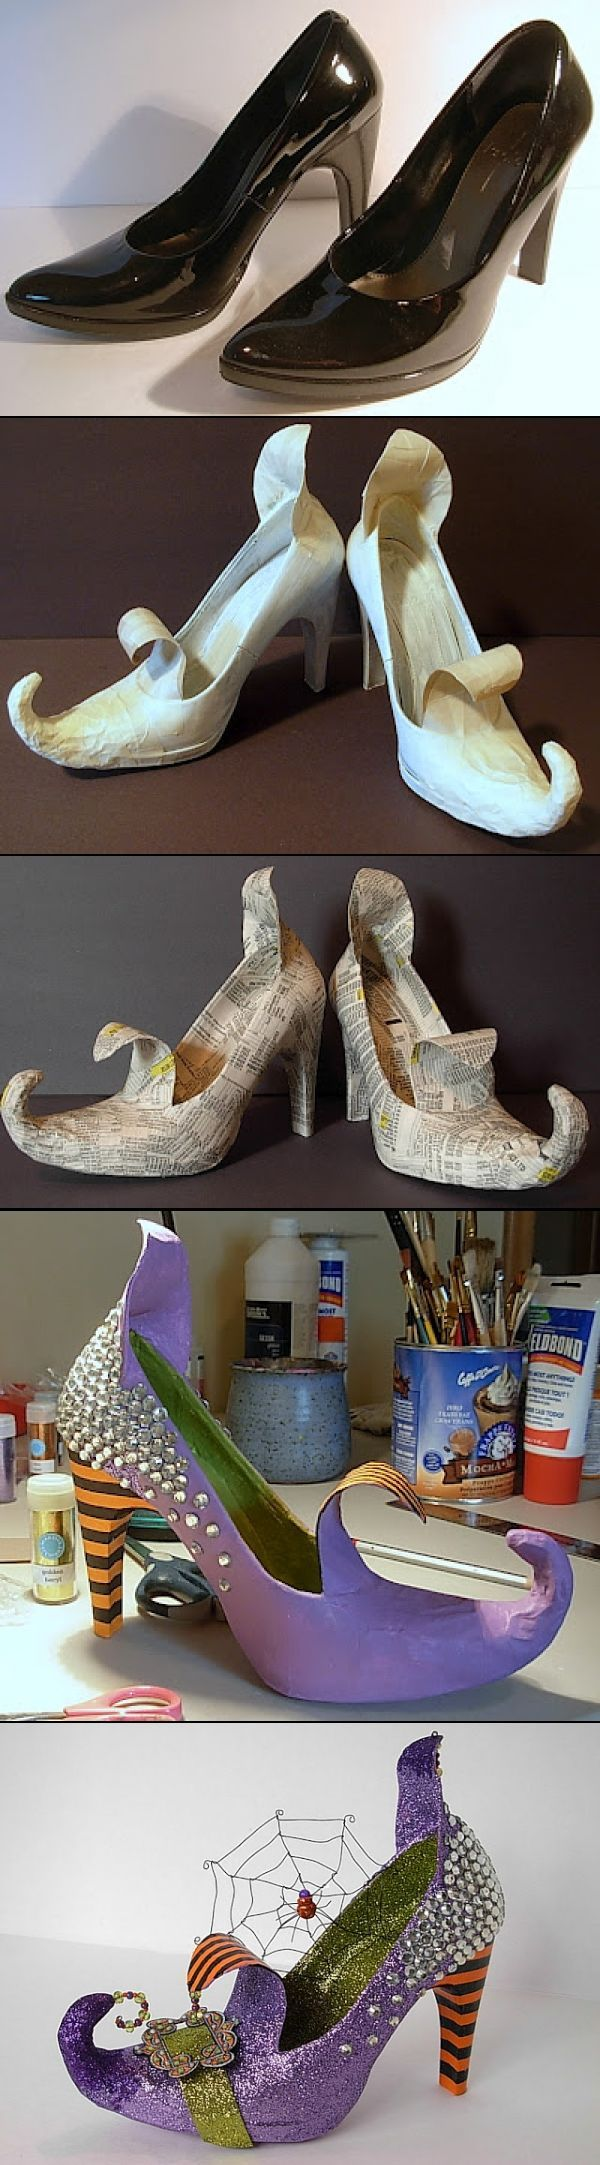 Halloween Costume Ideas: DIY witches shoes- certainly could scale down to k...